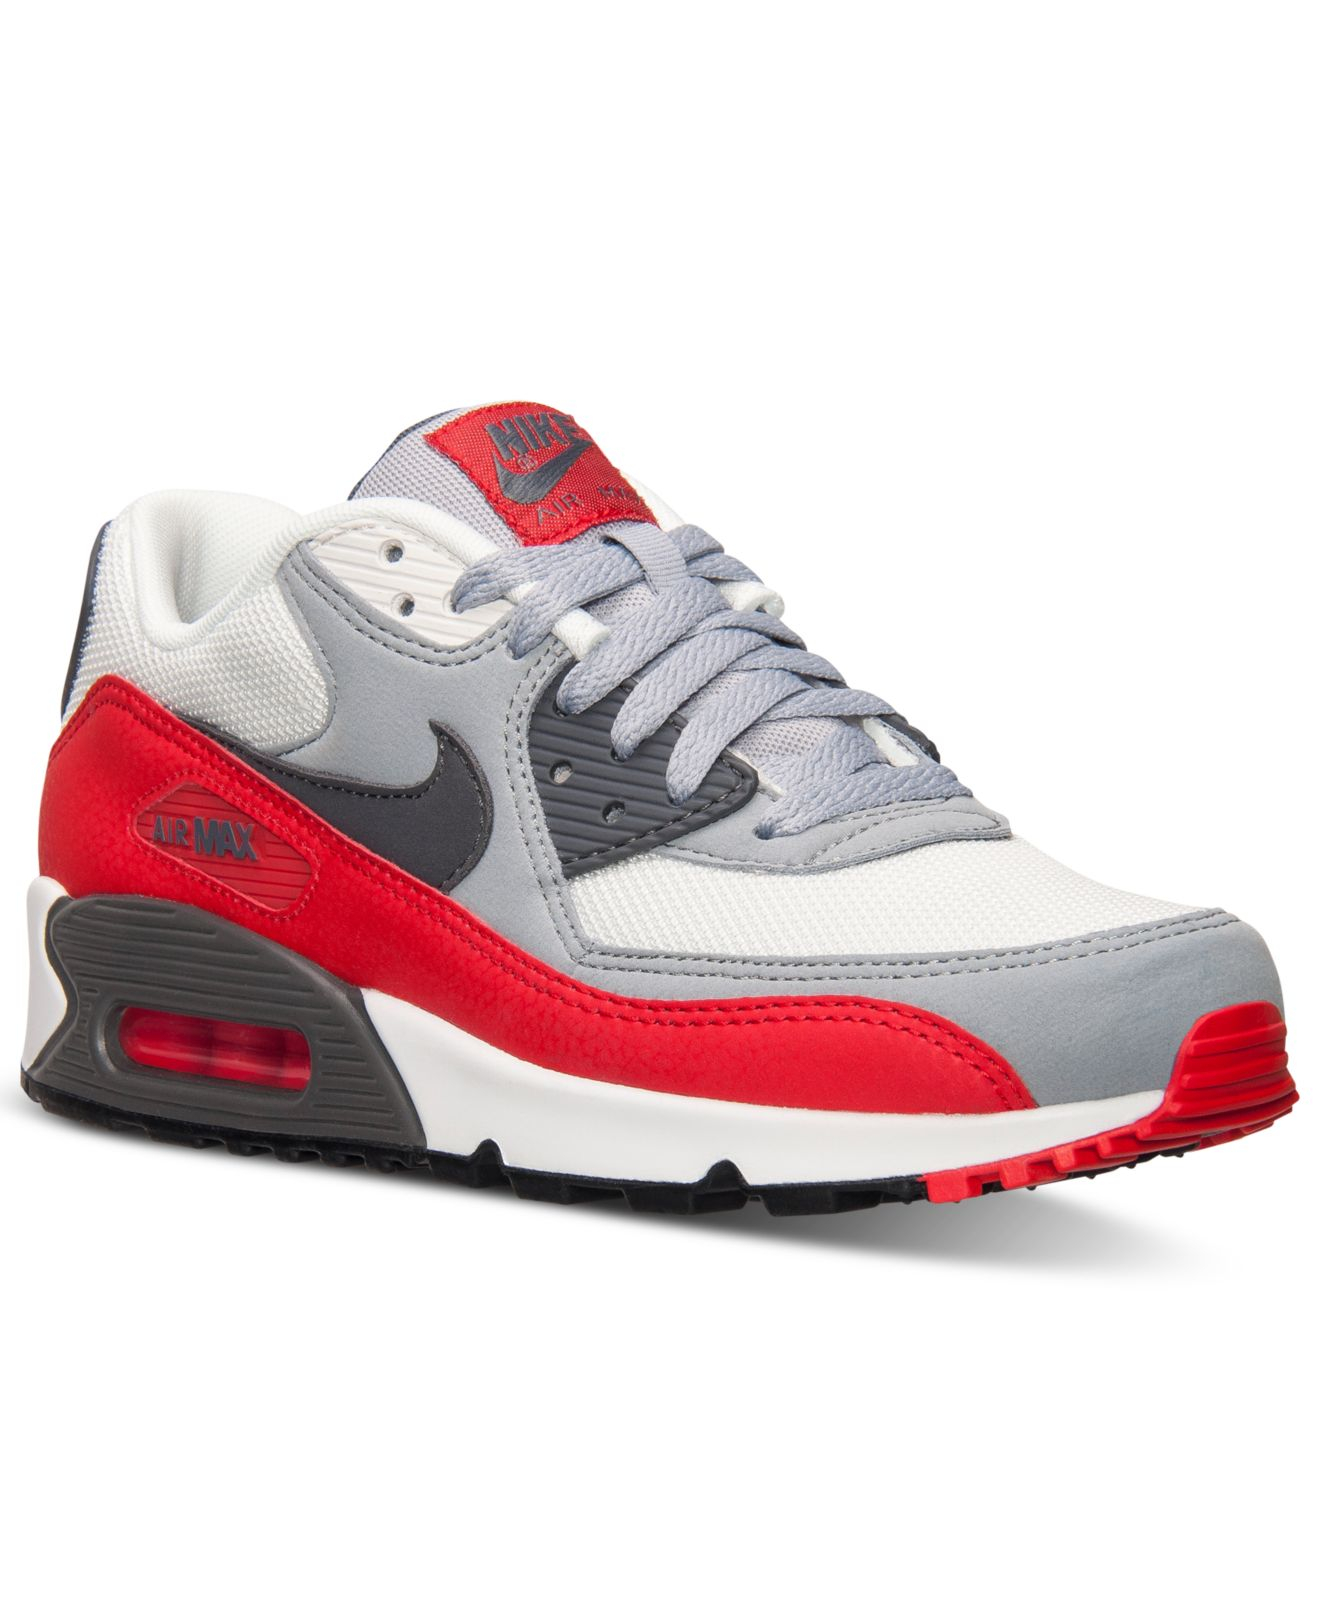 Lyst - Nike Men s Air Max 90 Essential Running Sneakers From Finish ... 880f98373